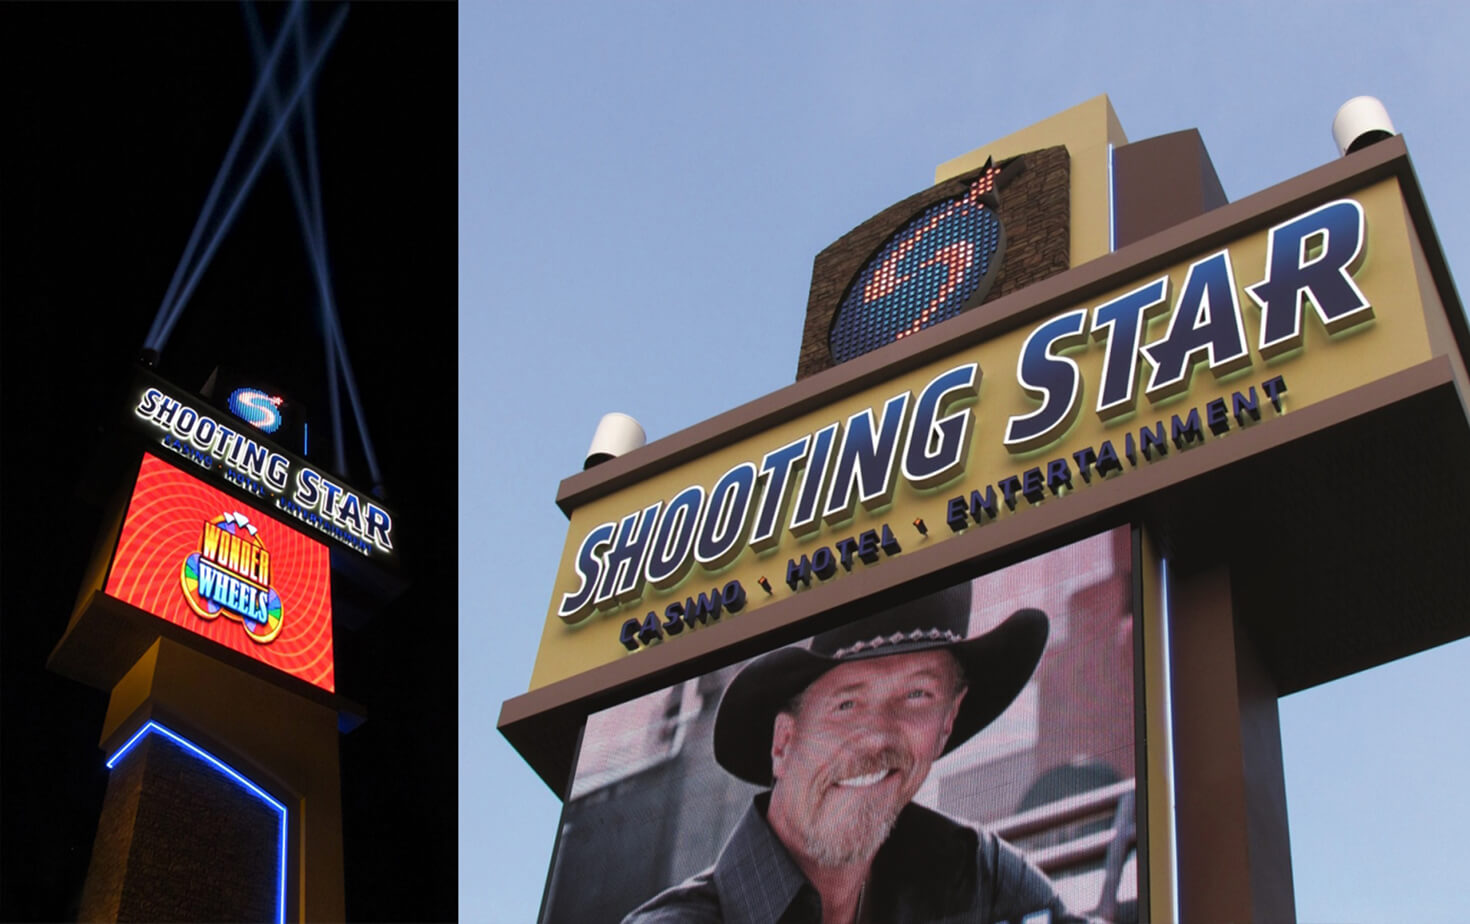 Shooting Star Casino in Mahnomen MN Exterior Pylon Sign Header showcasing Digital Display and Accent Lighting